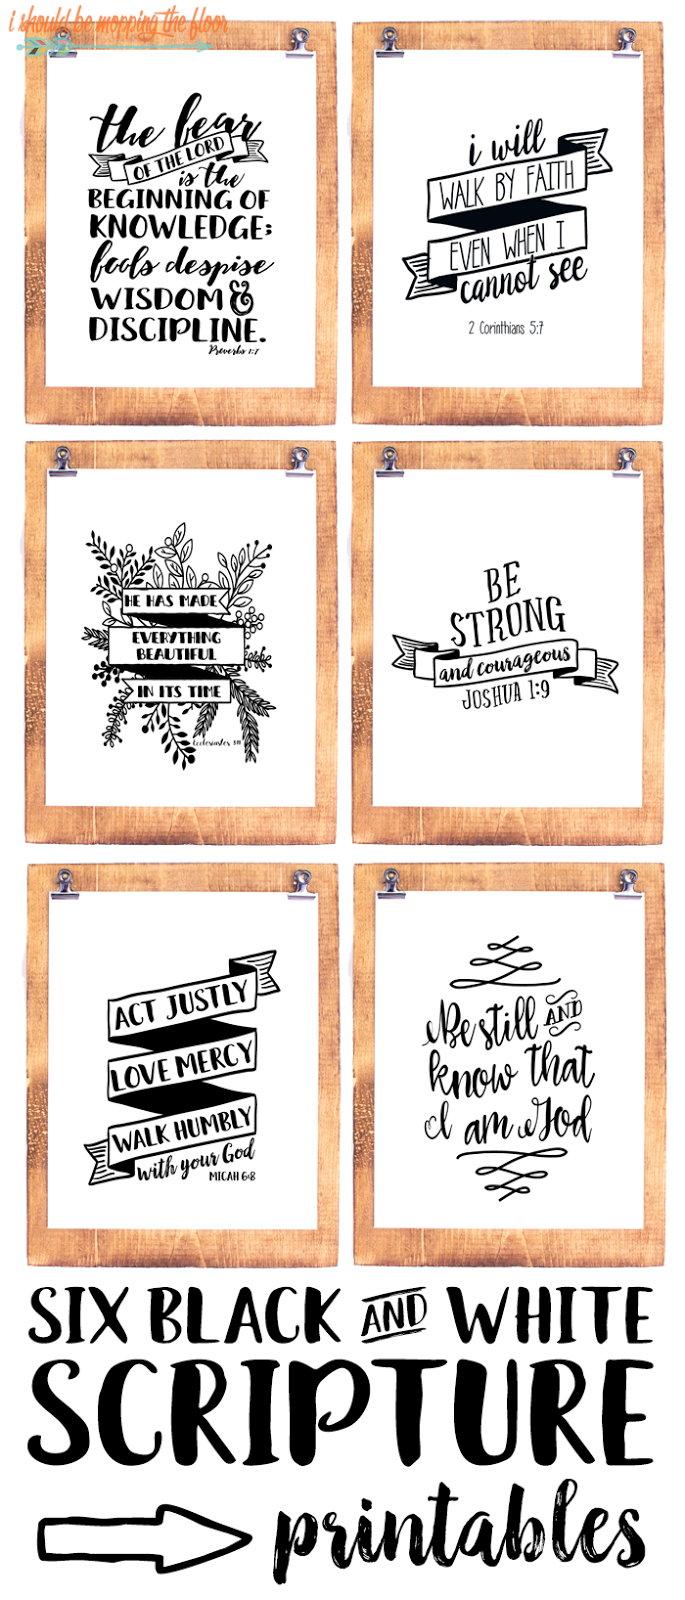 Six Black and White Scripture Printables | Scriptures, Black and ...